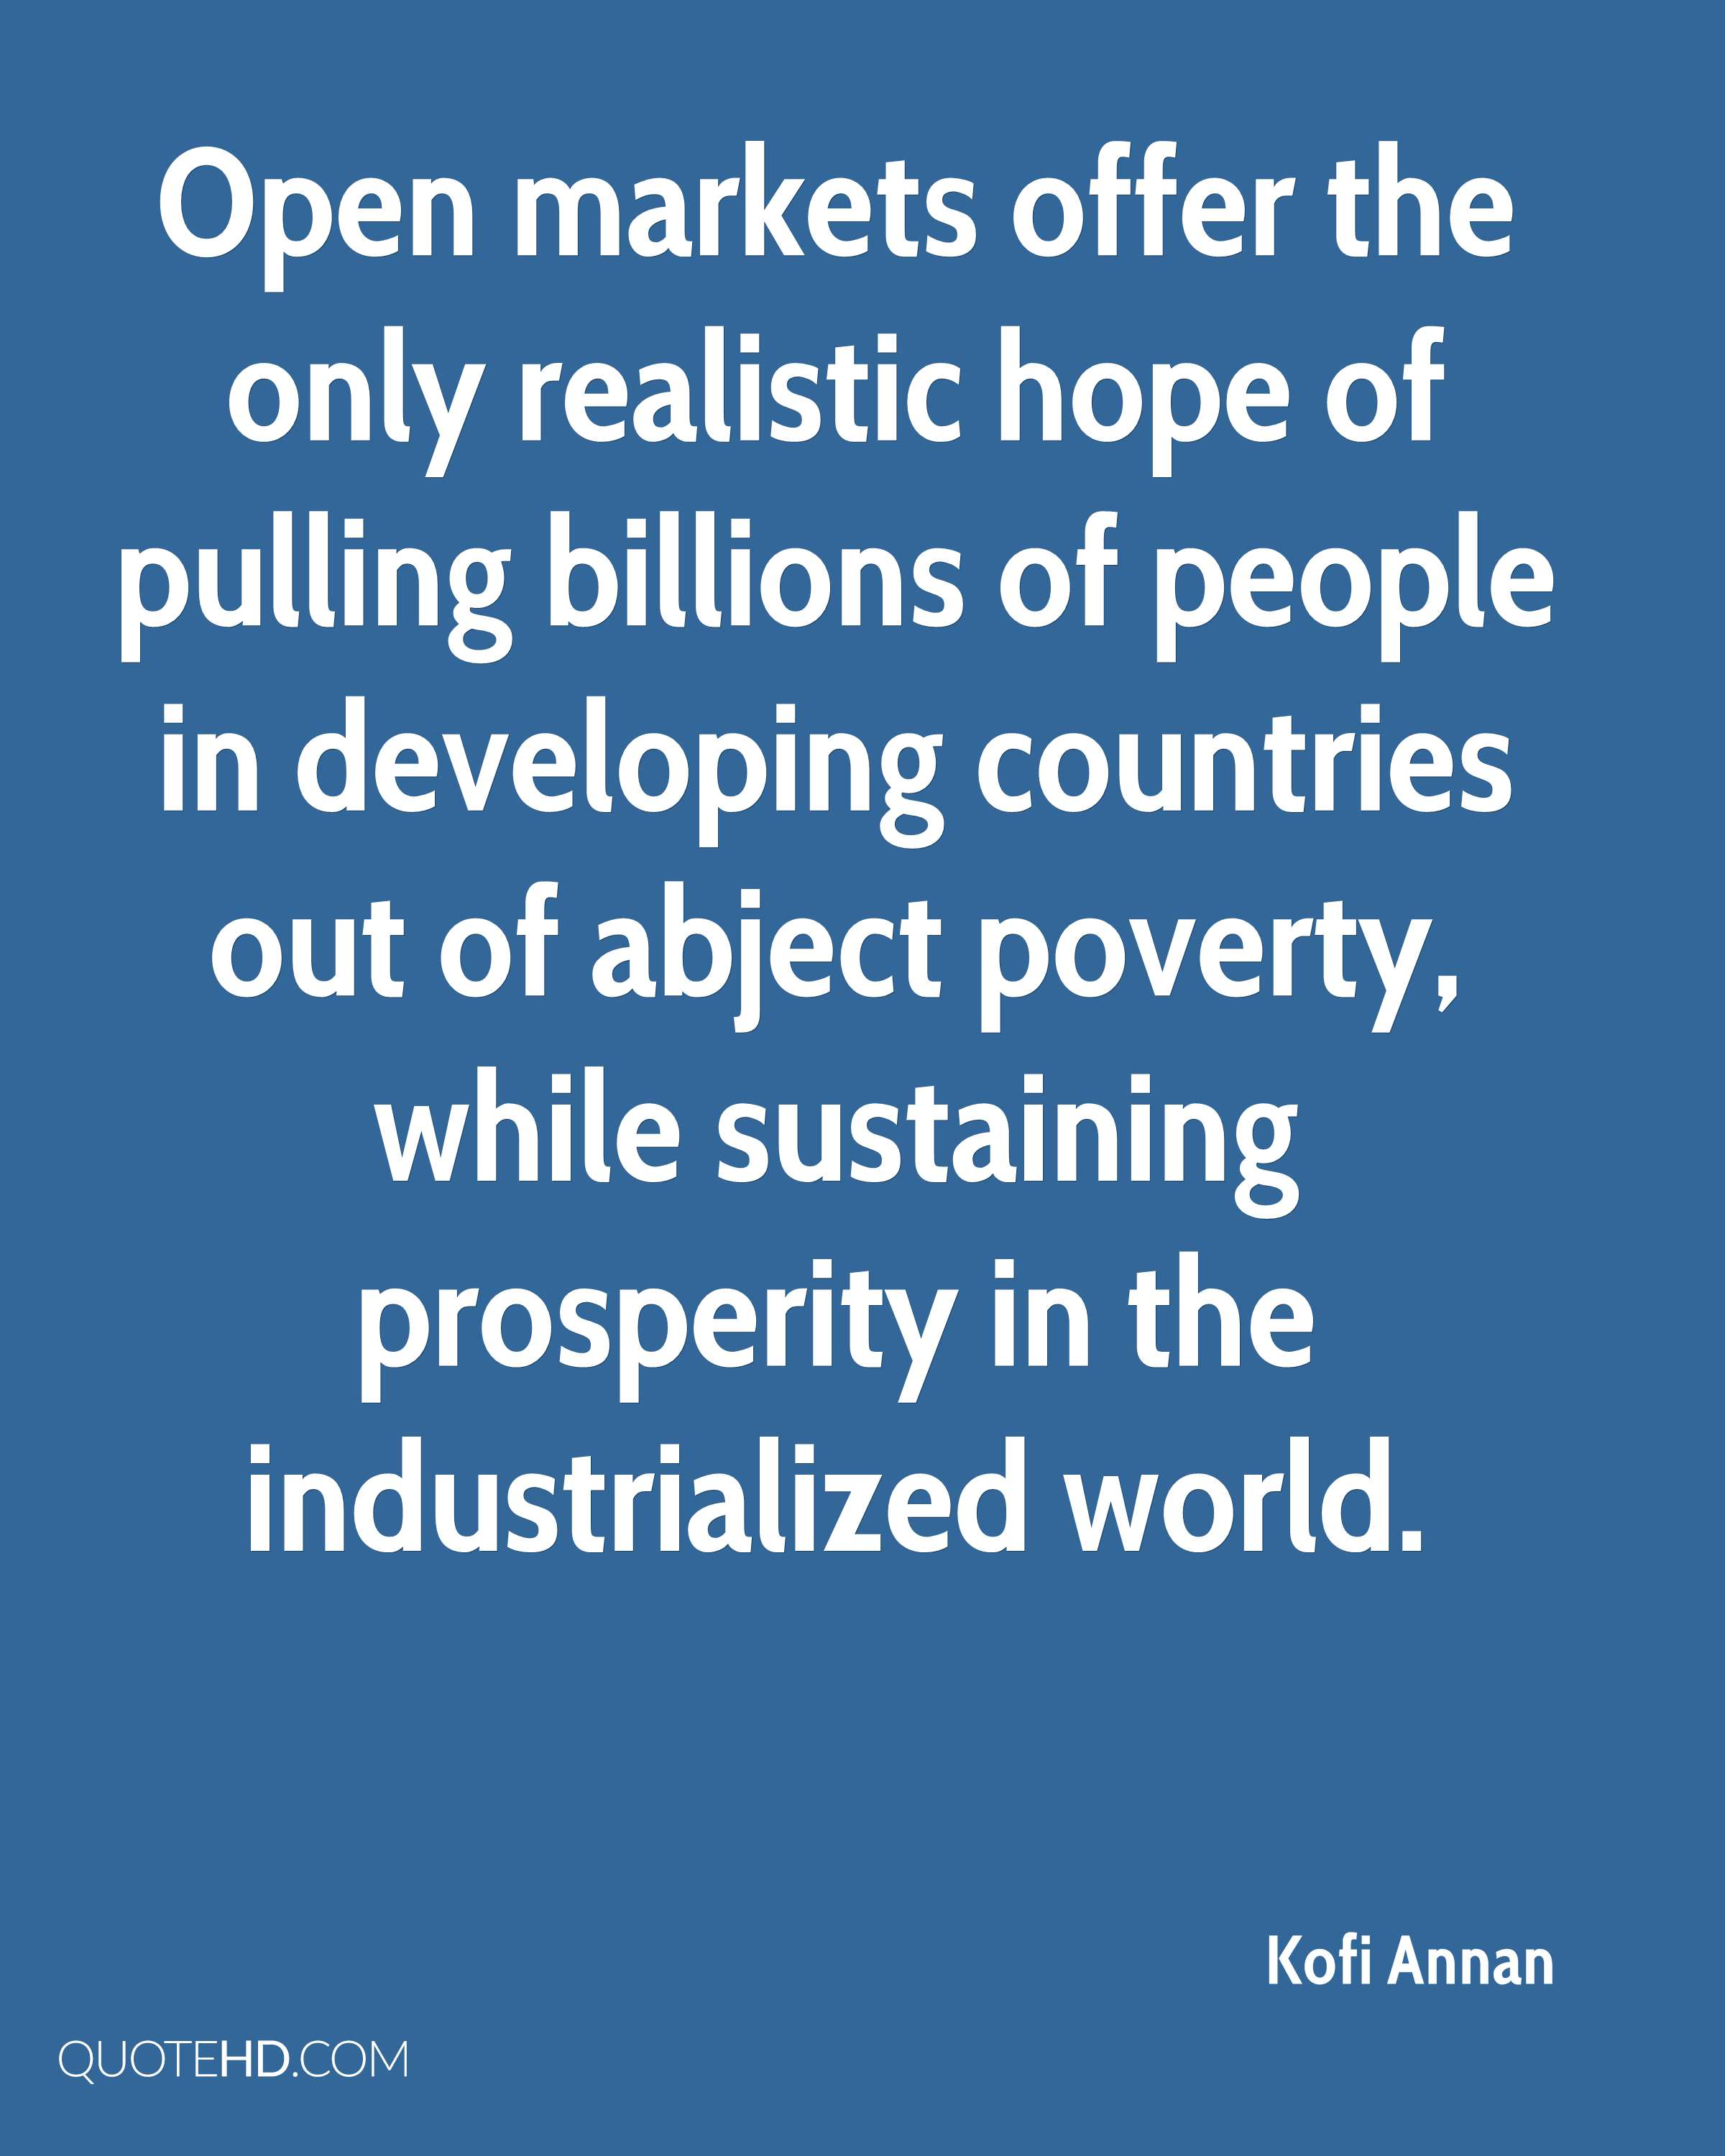 Open markets offer the only realistic hope of pulling billions of people in developing countries out of abject poverty, while sustaining prosperity in the industrialized world.